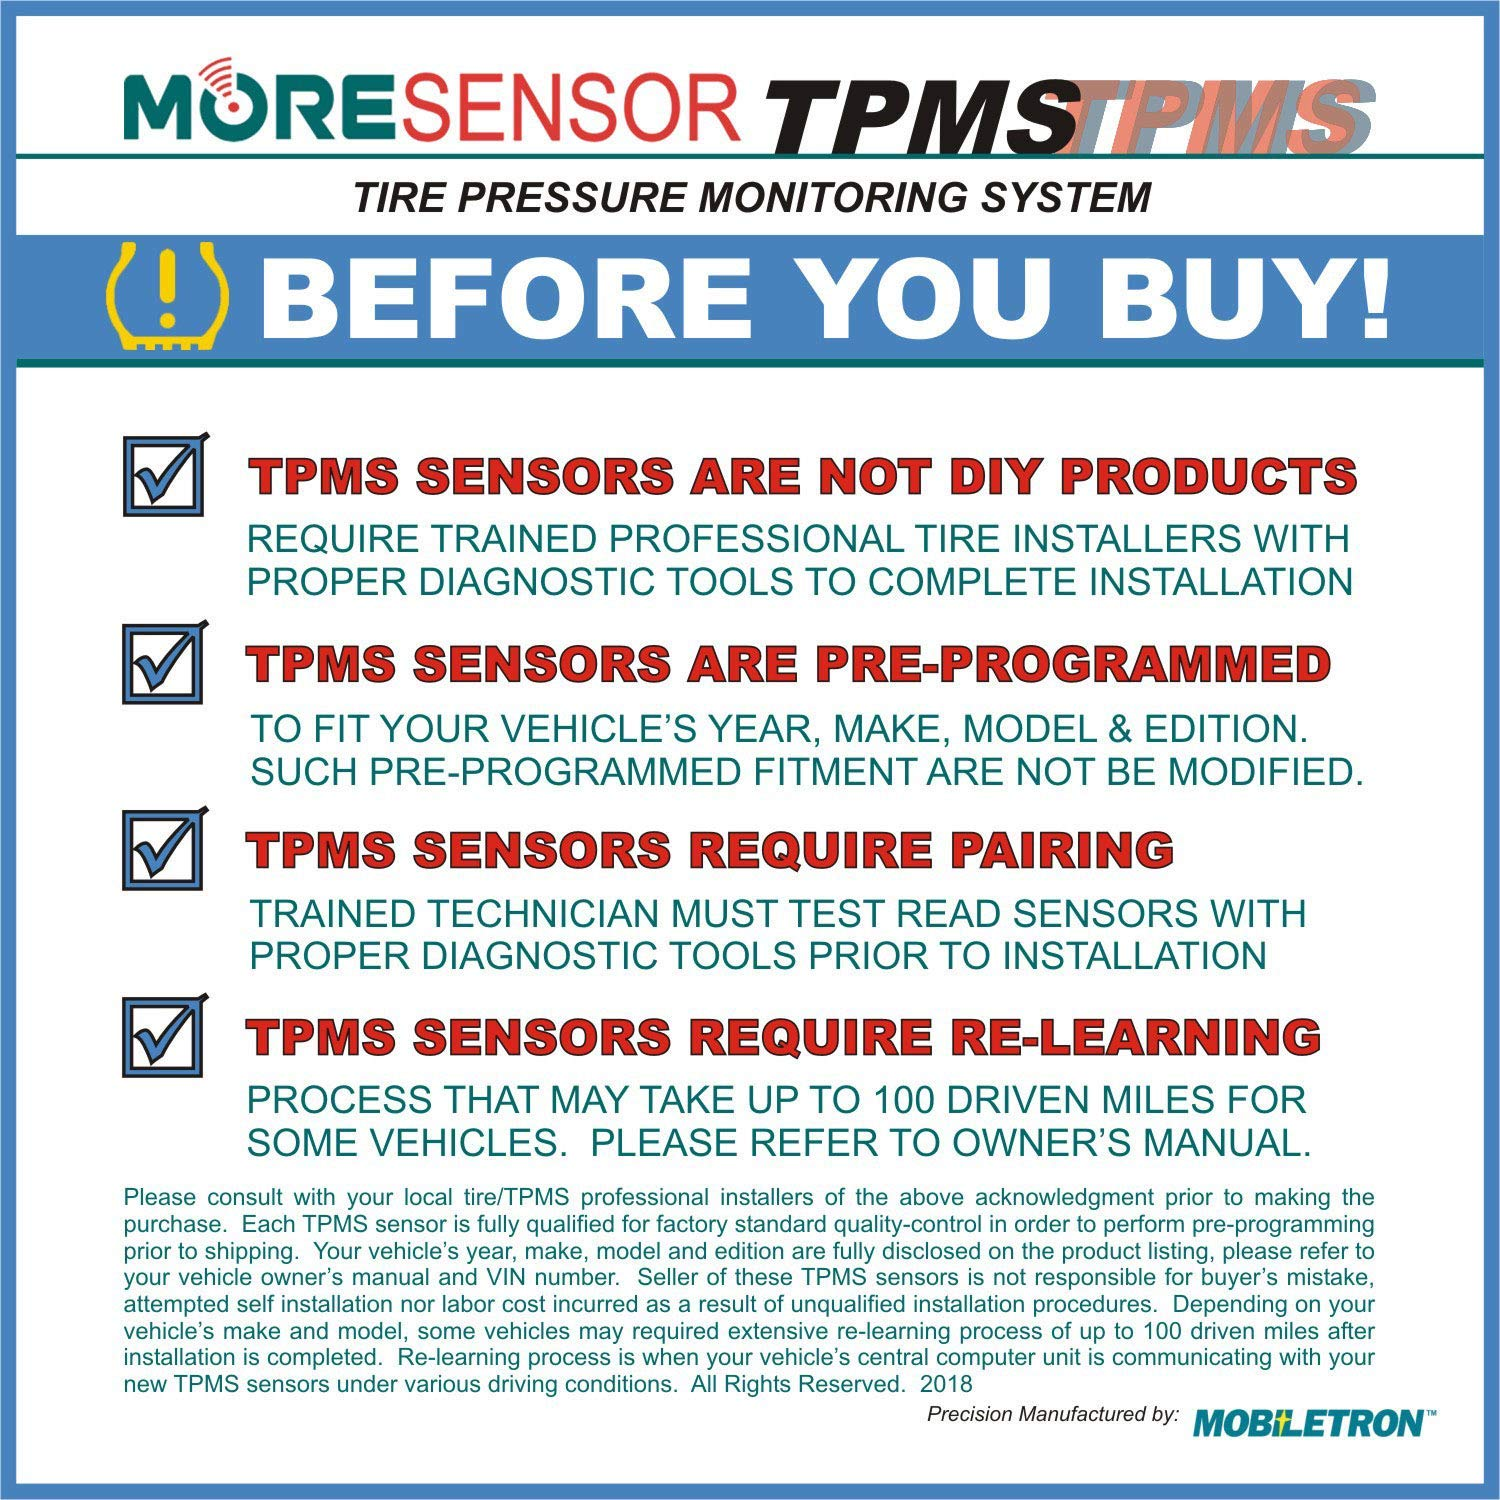 MOBILETRON MoreSensor fits 250+ Models CX-S008-4 4-Pack 315 MHz Clamp-in Direct-Fit TPMS Tire Pressure Sensor for Lexus//Scion//Toyota